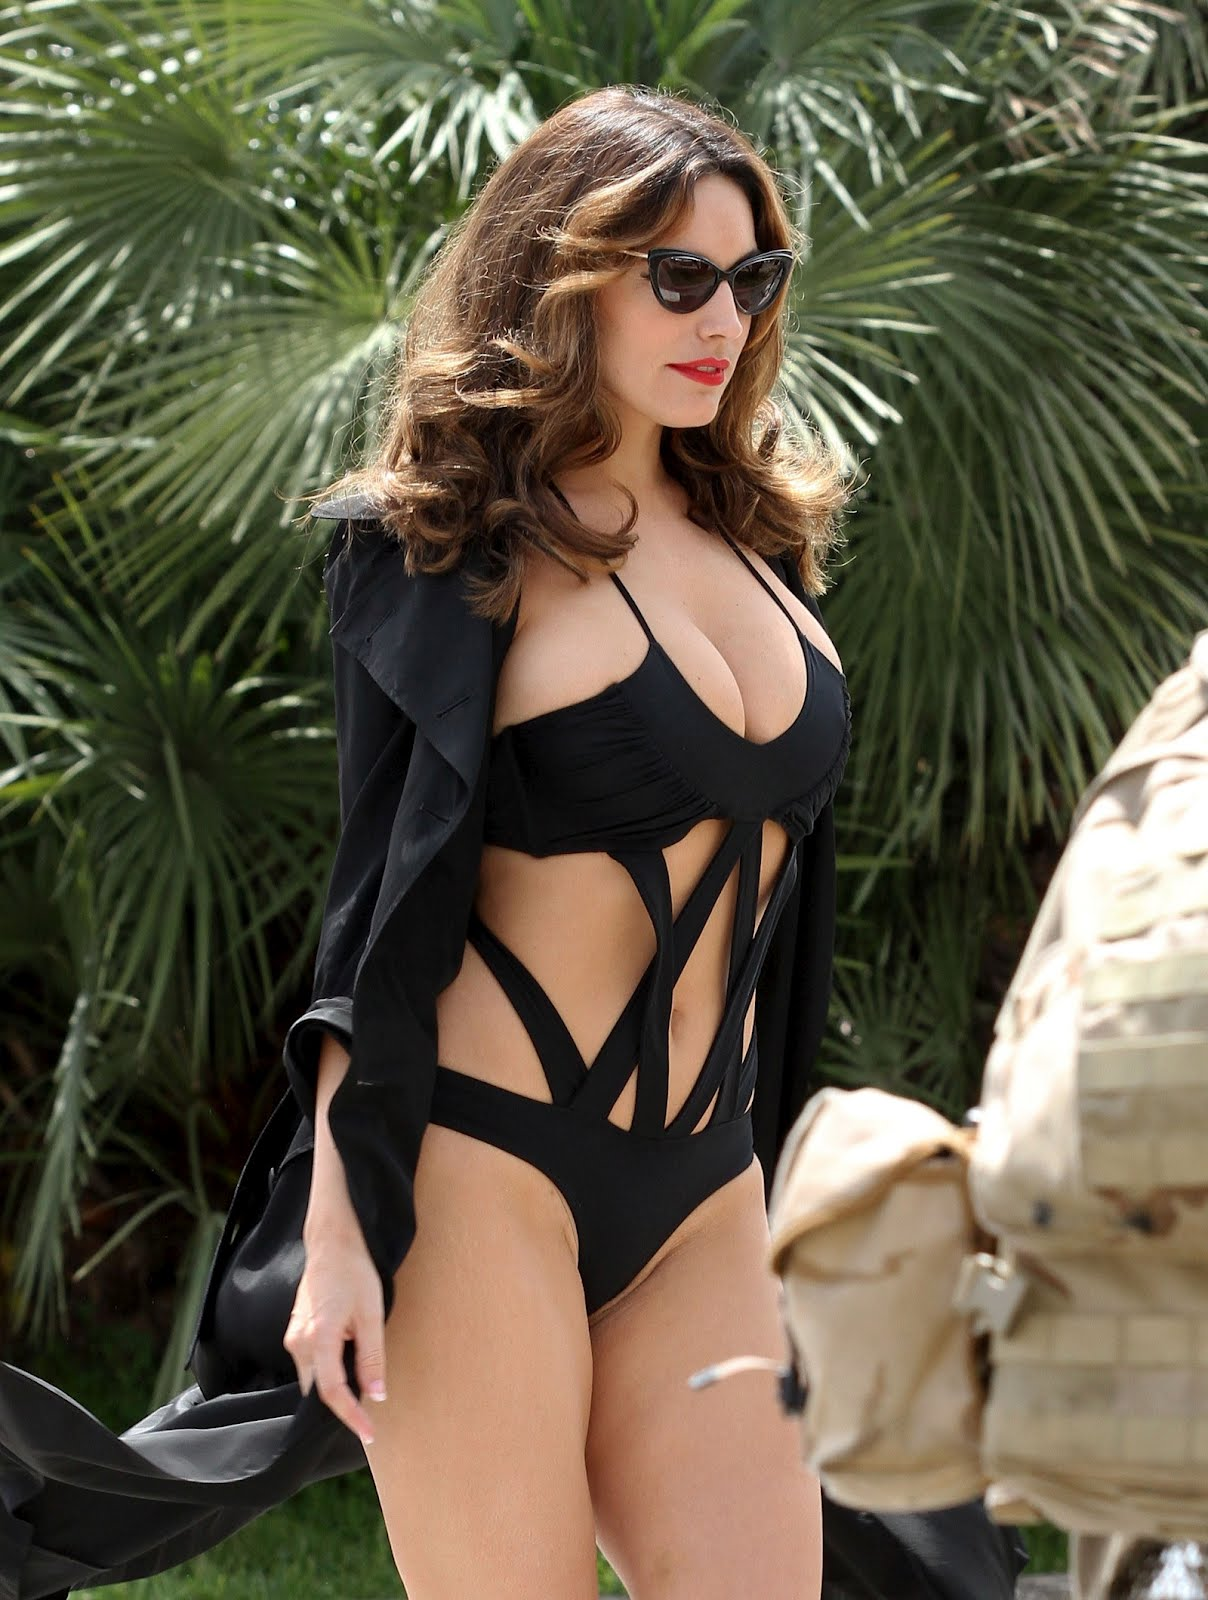 Kelly Brook Squeezes Into An Indecent Black Swimsuit For